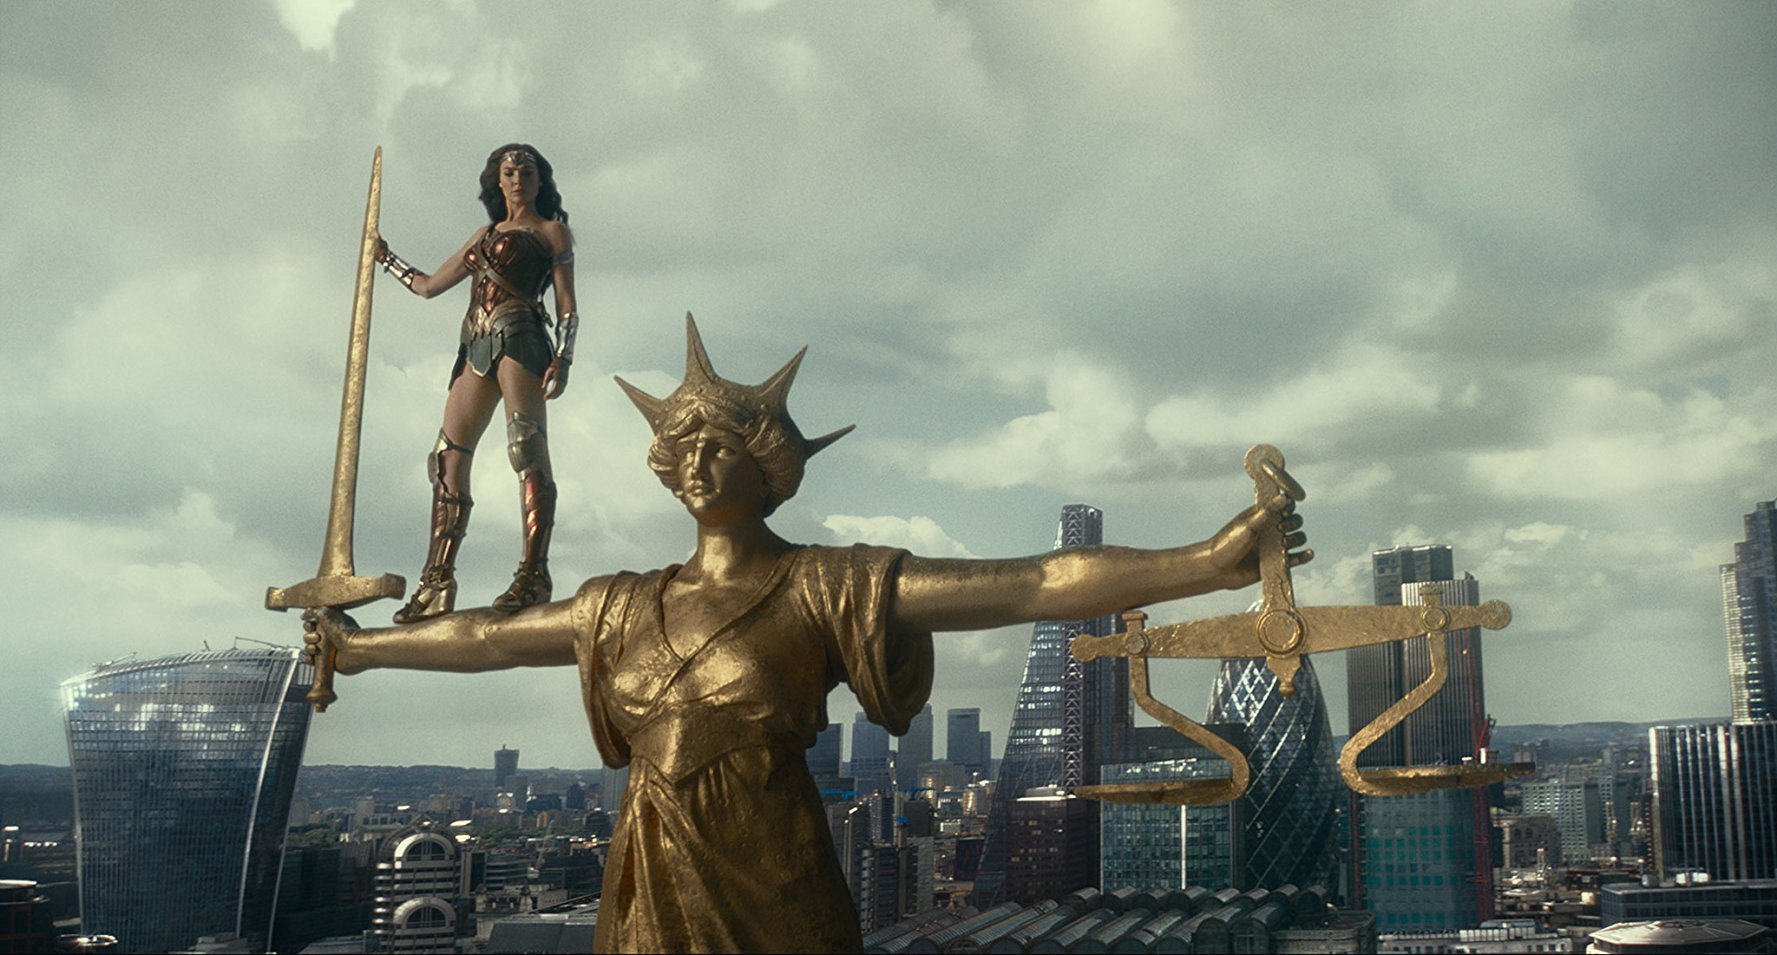 Wonder Woman (Gal Gadot) in Justice League (2017)